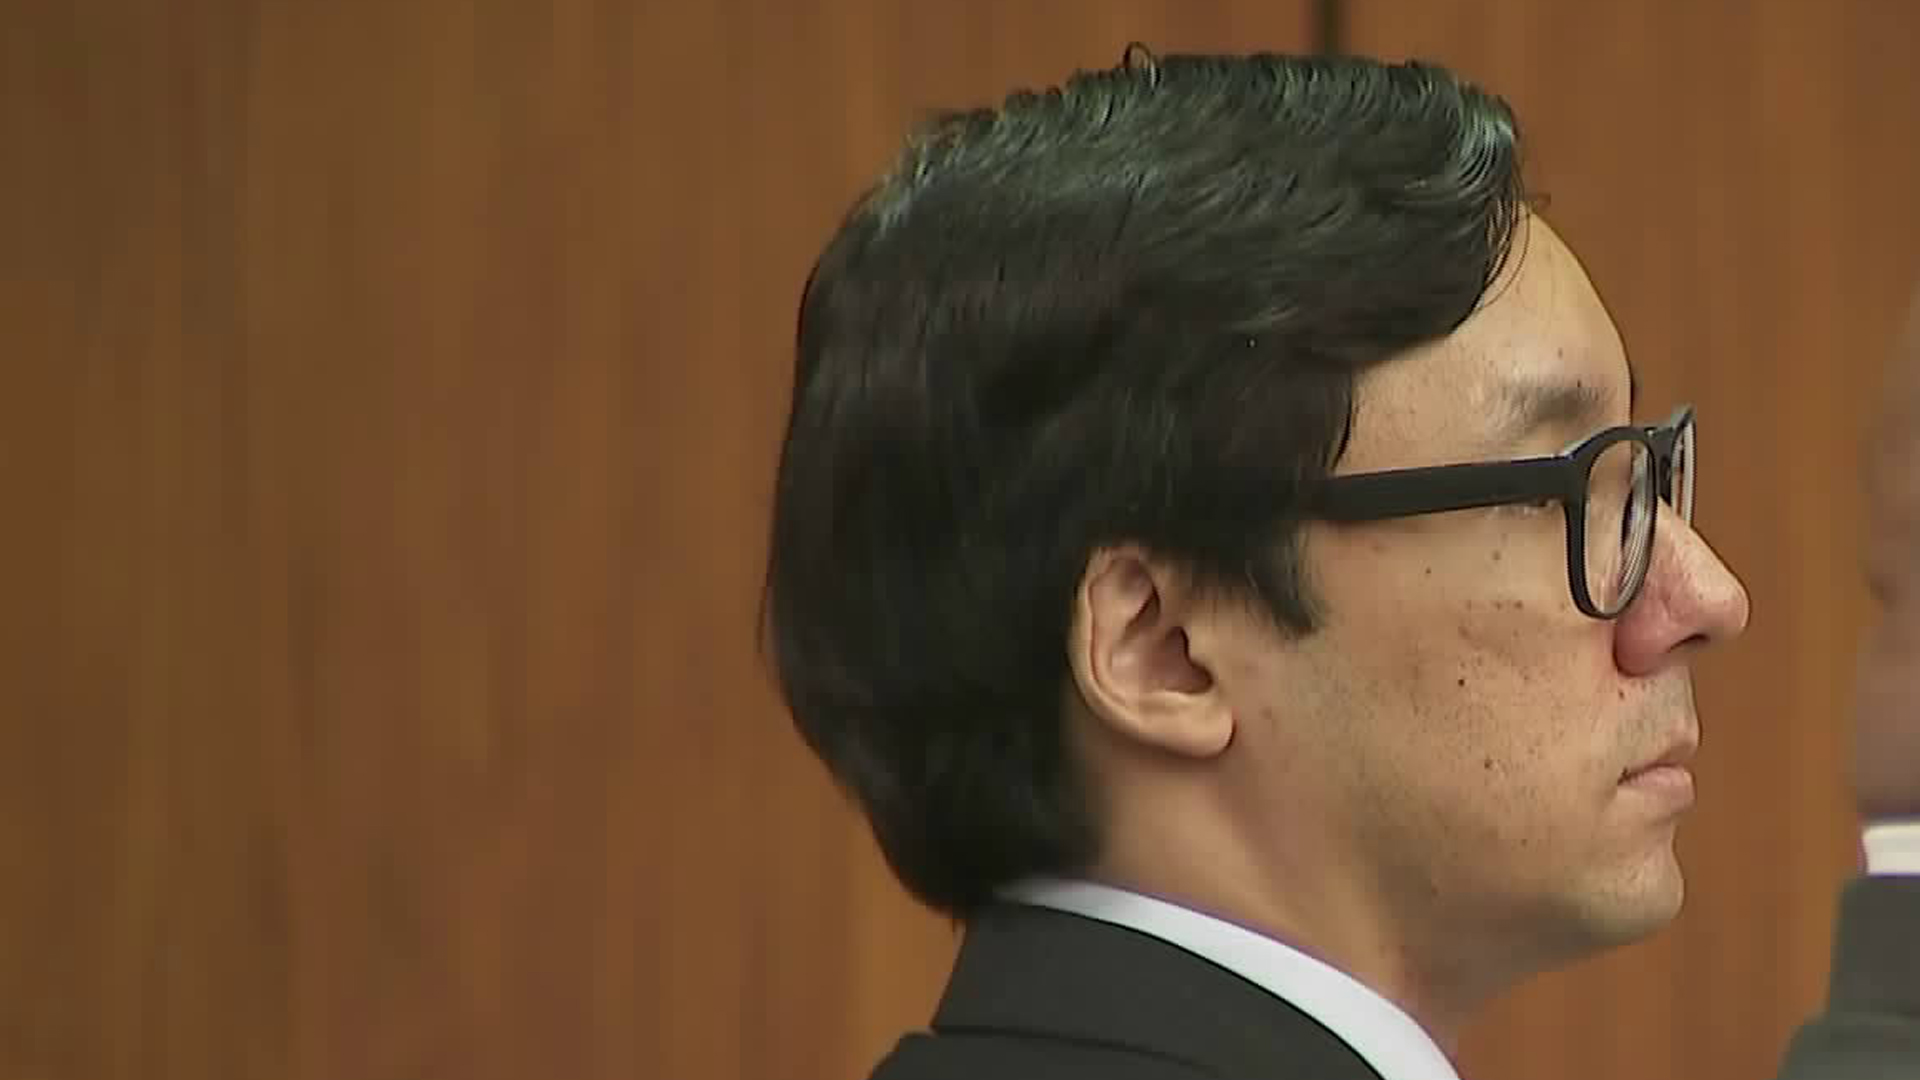 Kevon Ross, 33, listens to a judge speak just moments before being convicted on May 30, 2018, of murdering and raping a woman in Gardena and raping three others. (Credit: KTLA)